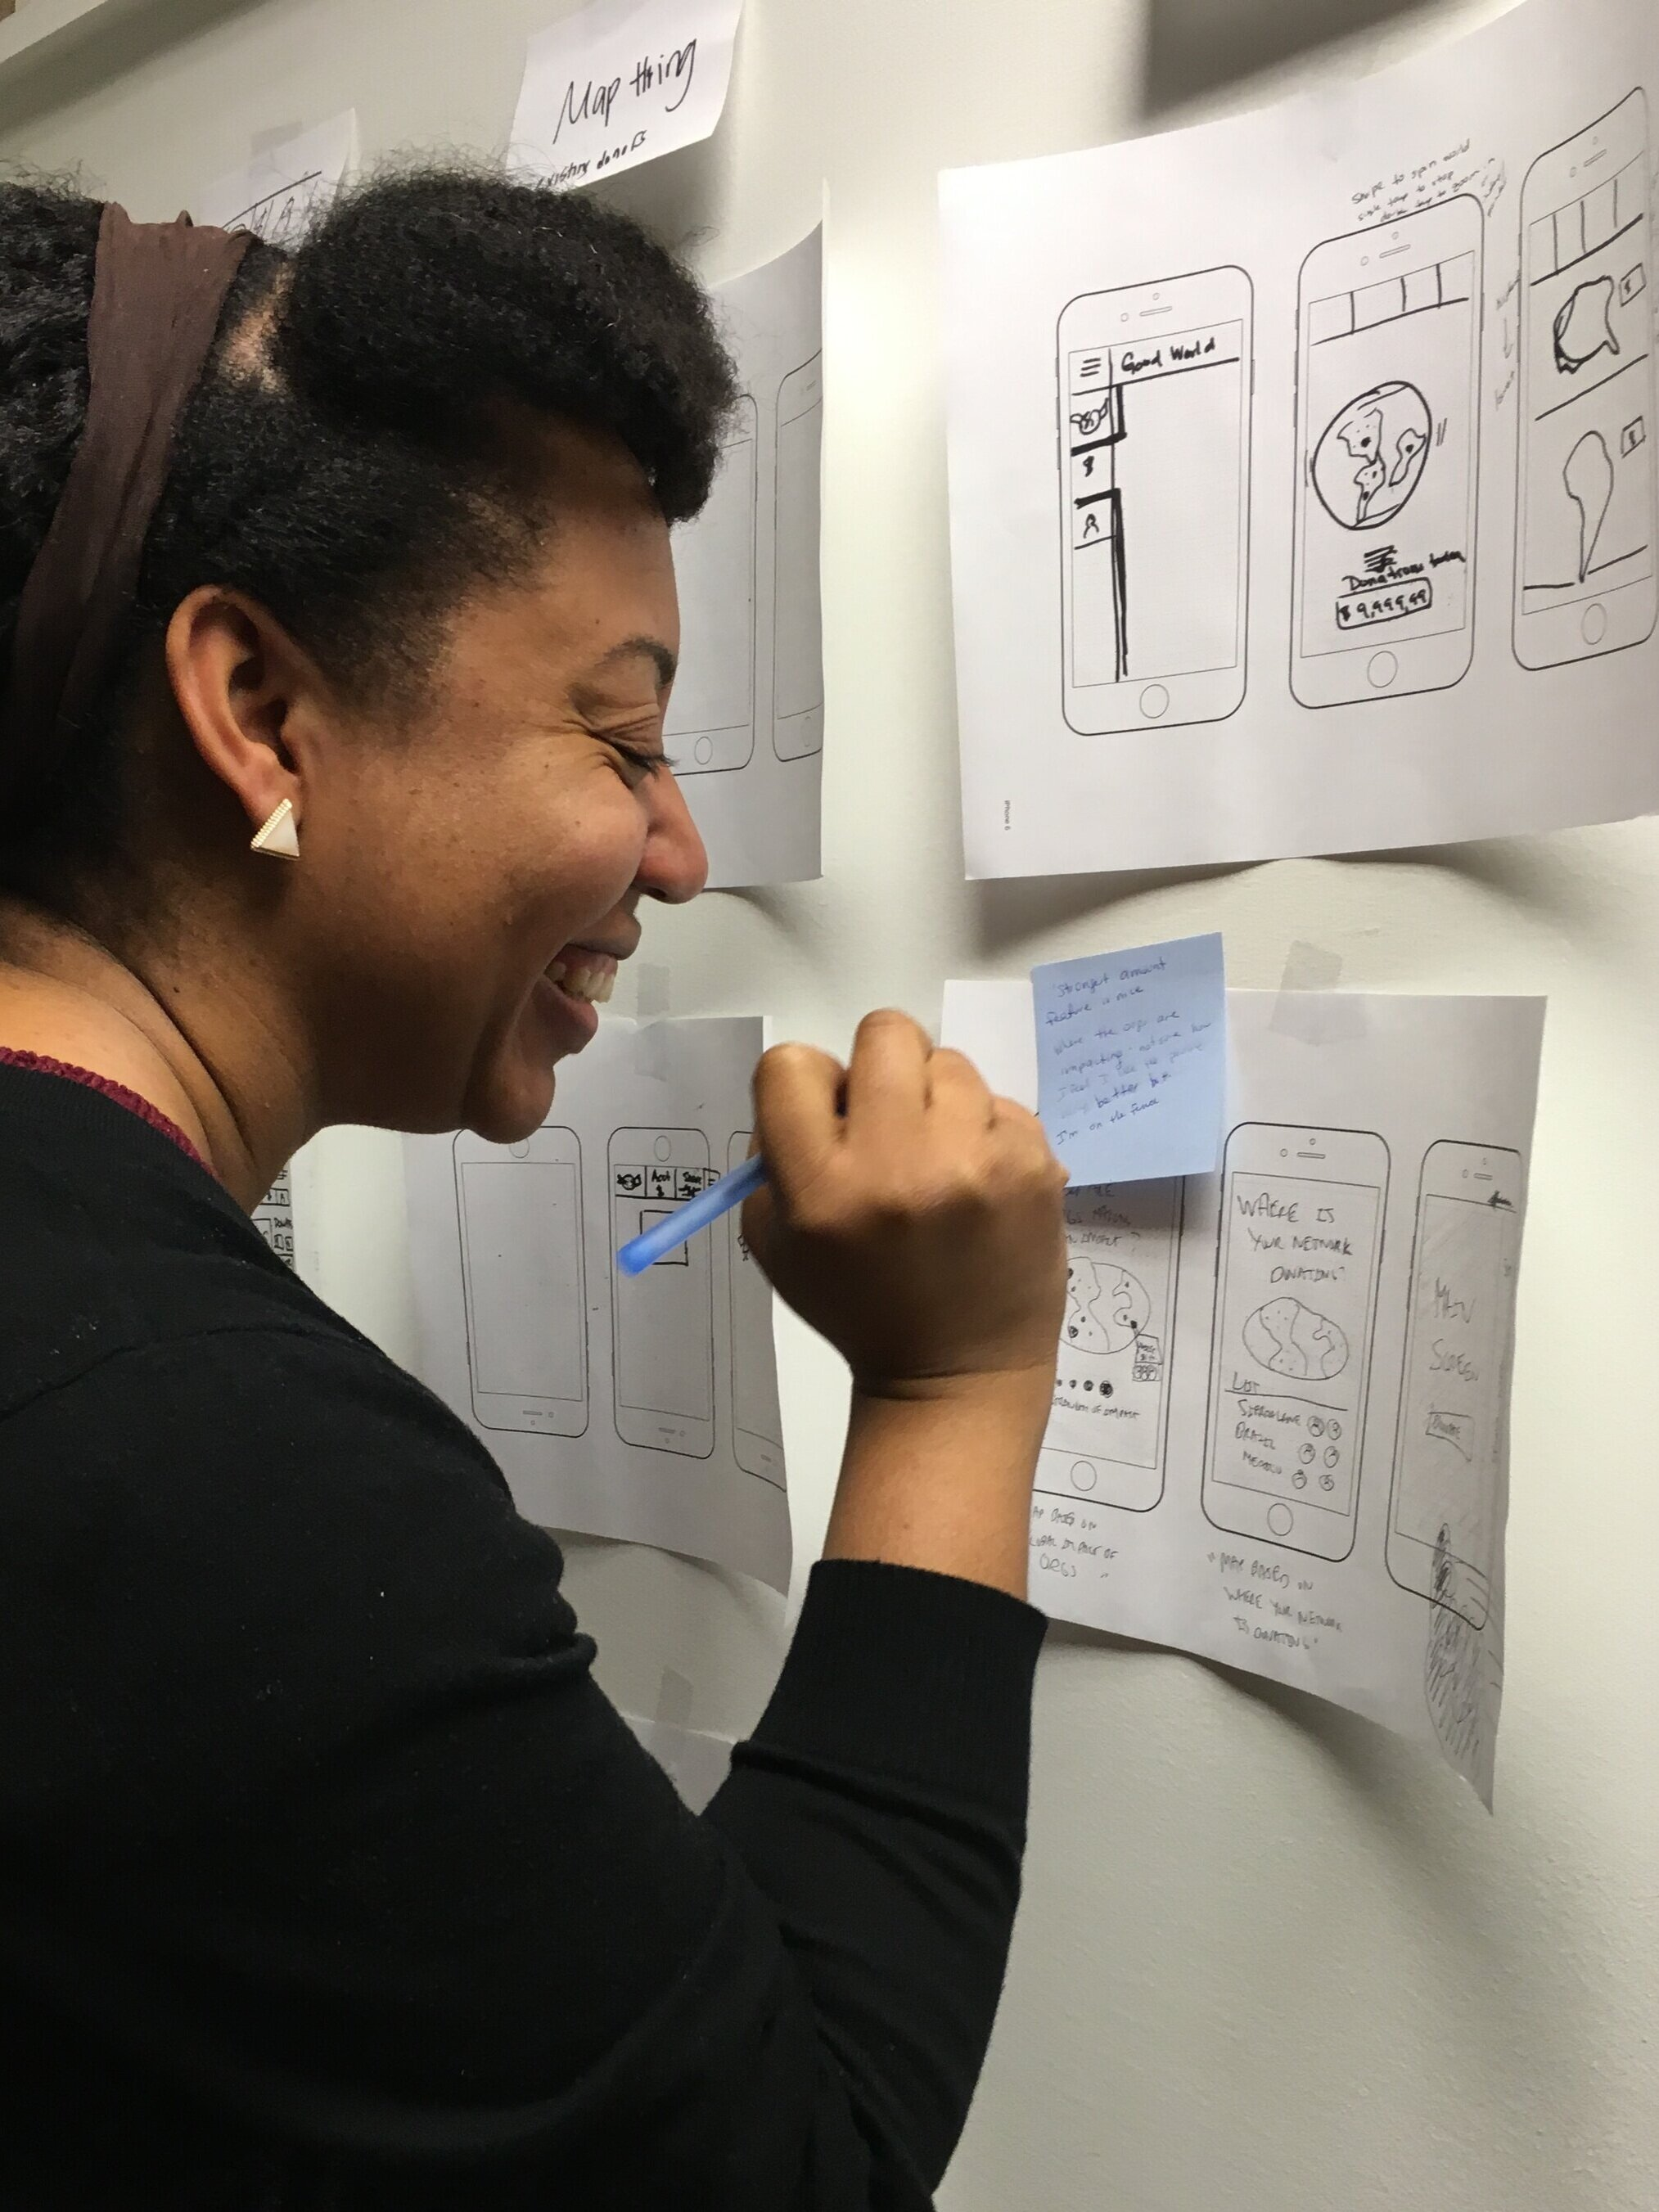 Hi! I'm Sherene, a UX Designer. - I am passionate about combining design and problem solving to be an advocate for the user.